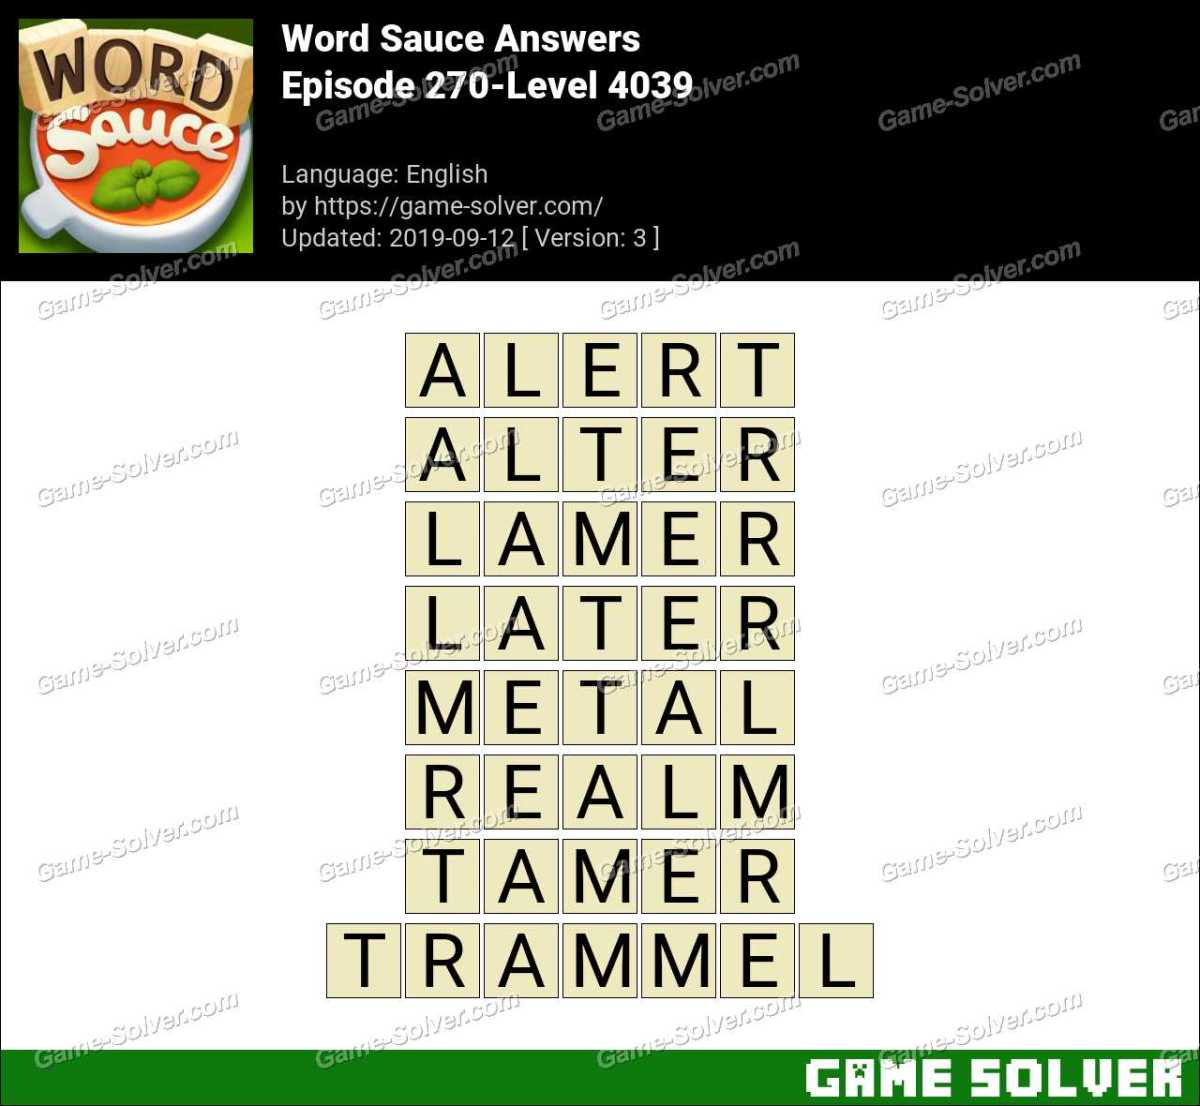 Word Sauce Episode 270-Level 4039 Answers